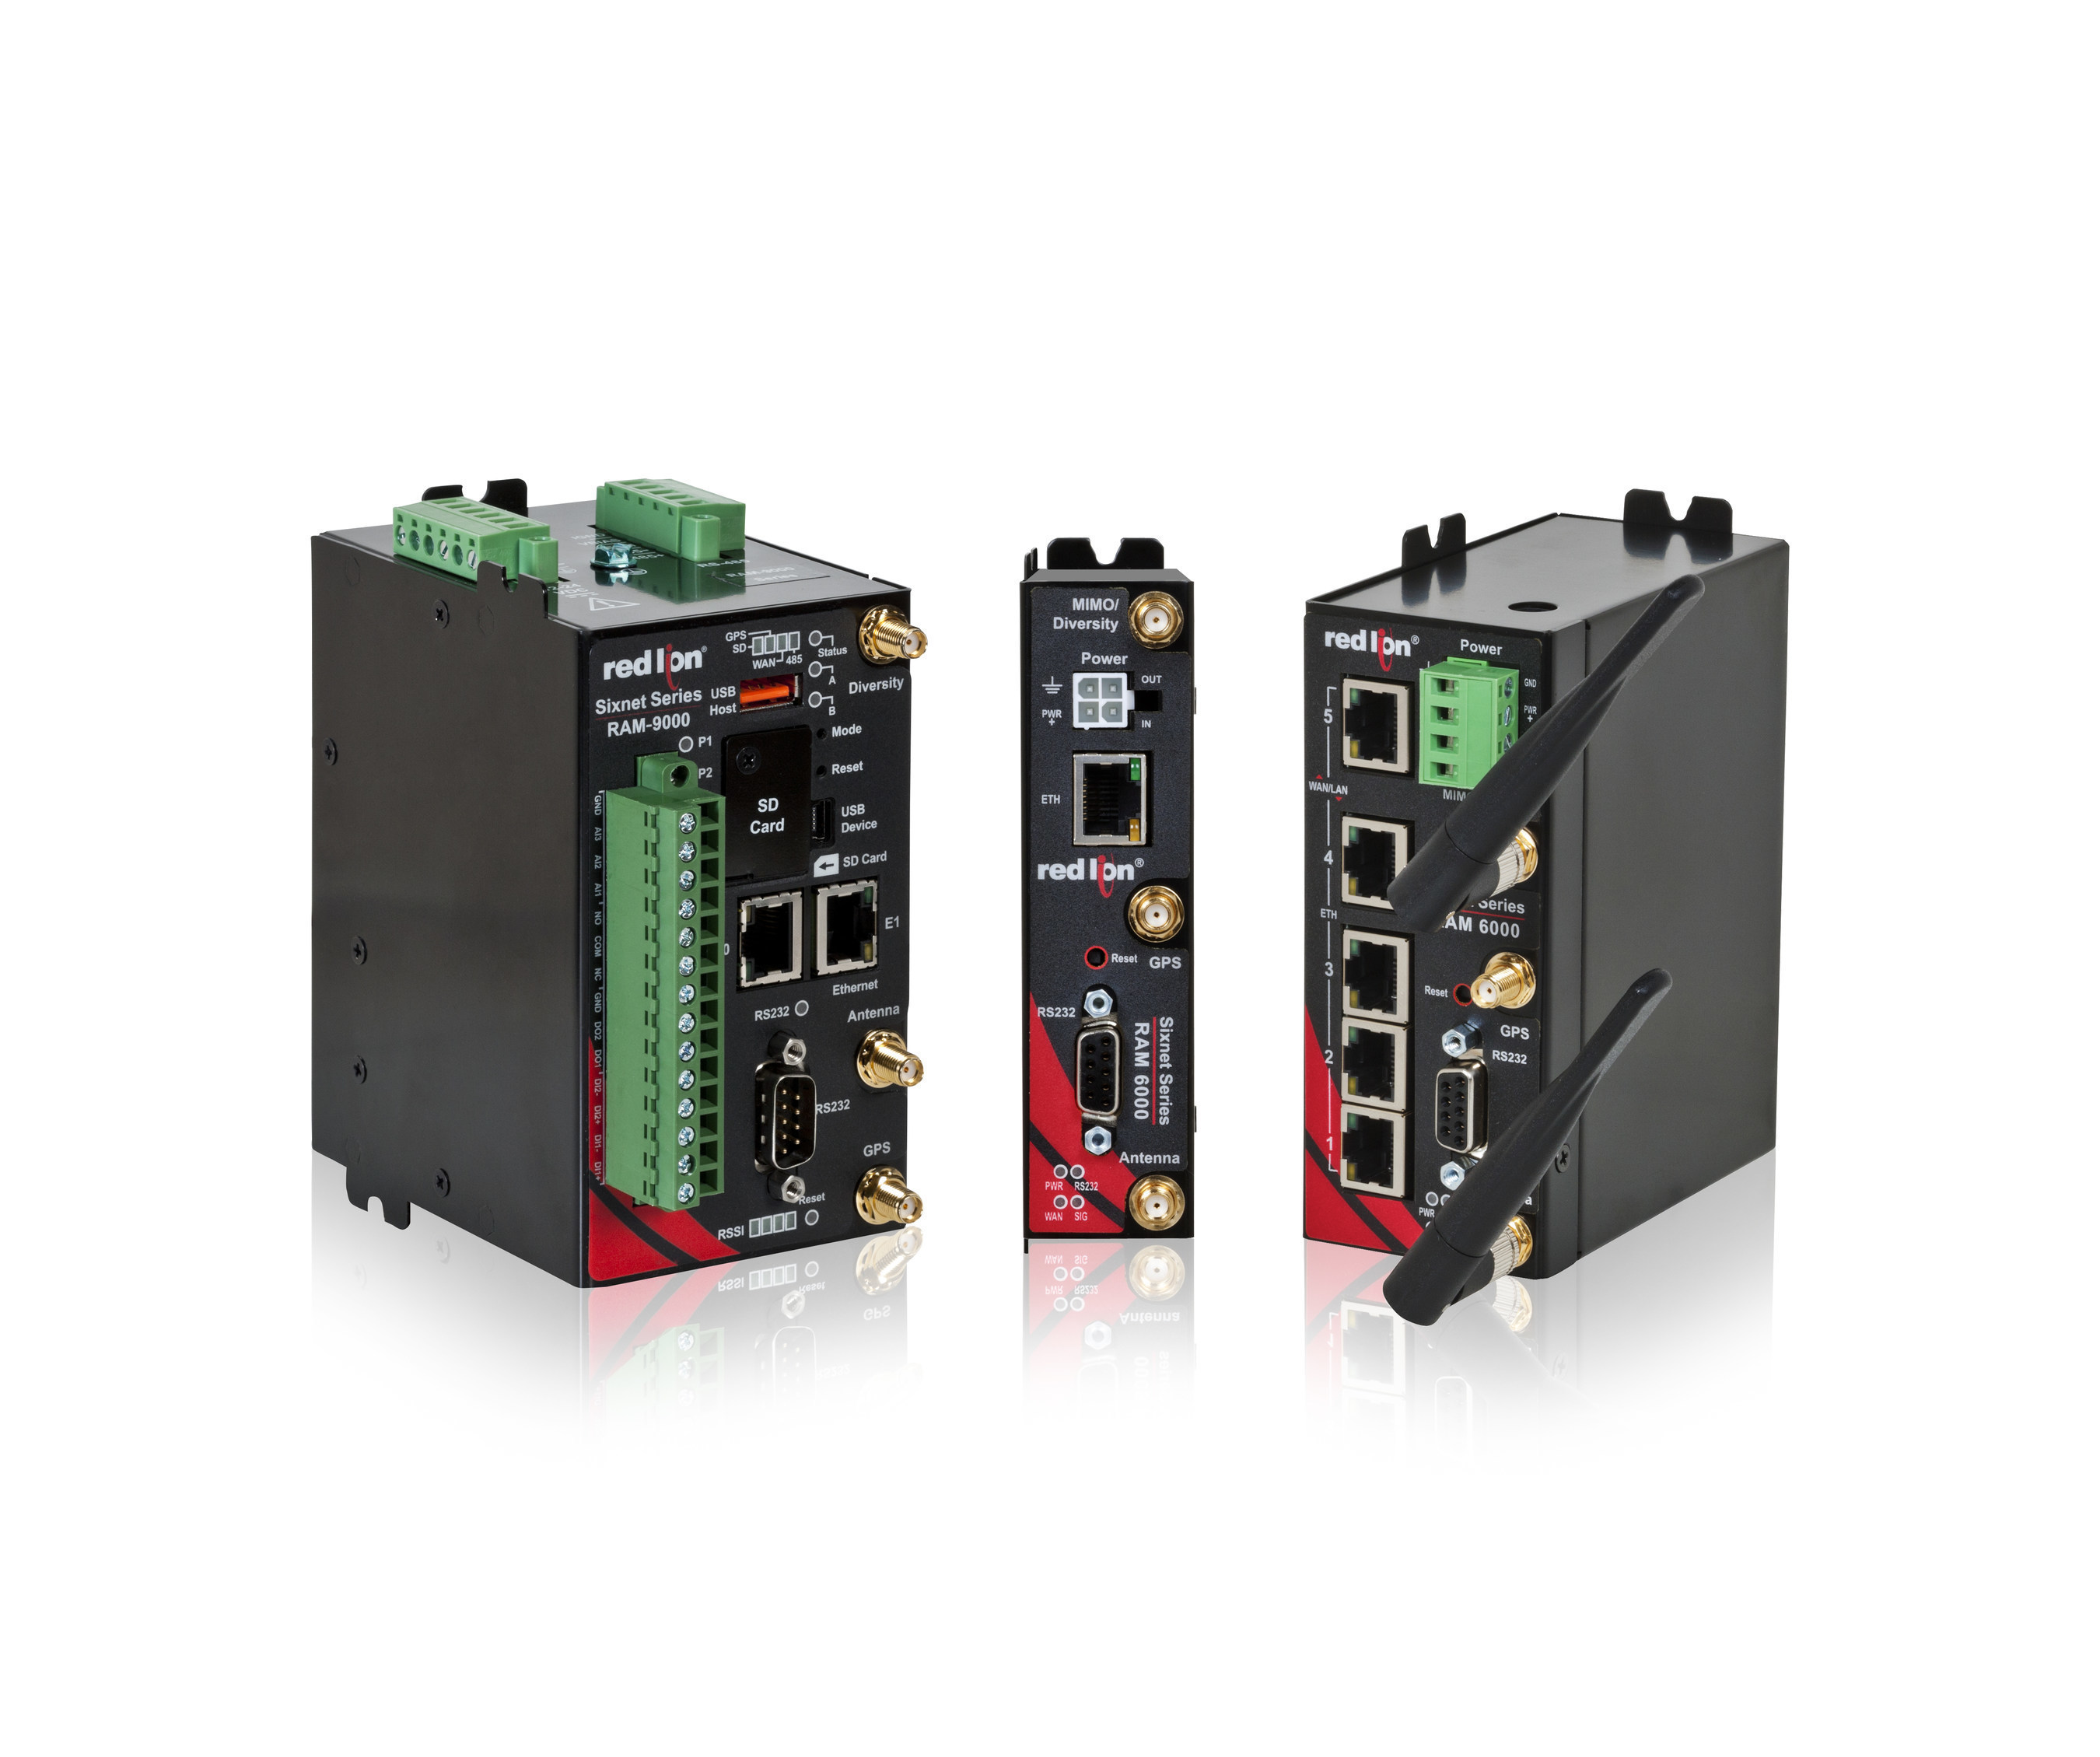 Red Lion's multi-carrier 4G LTE Sixnet(R) series RAM(R) 6000 and 9000 industrial cellular RTUs have earned NEMA TS2 section 2 compliance, validating industrial equipment for use in Intelligent Traffic Systems (ITS) applications.